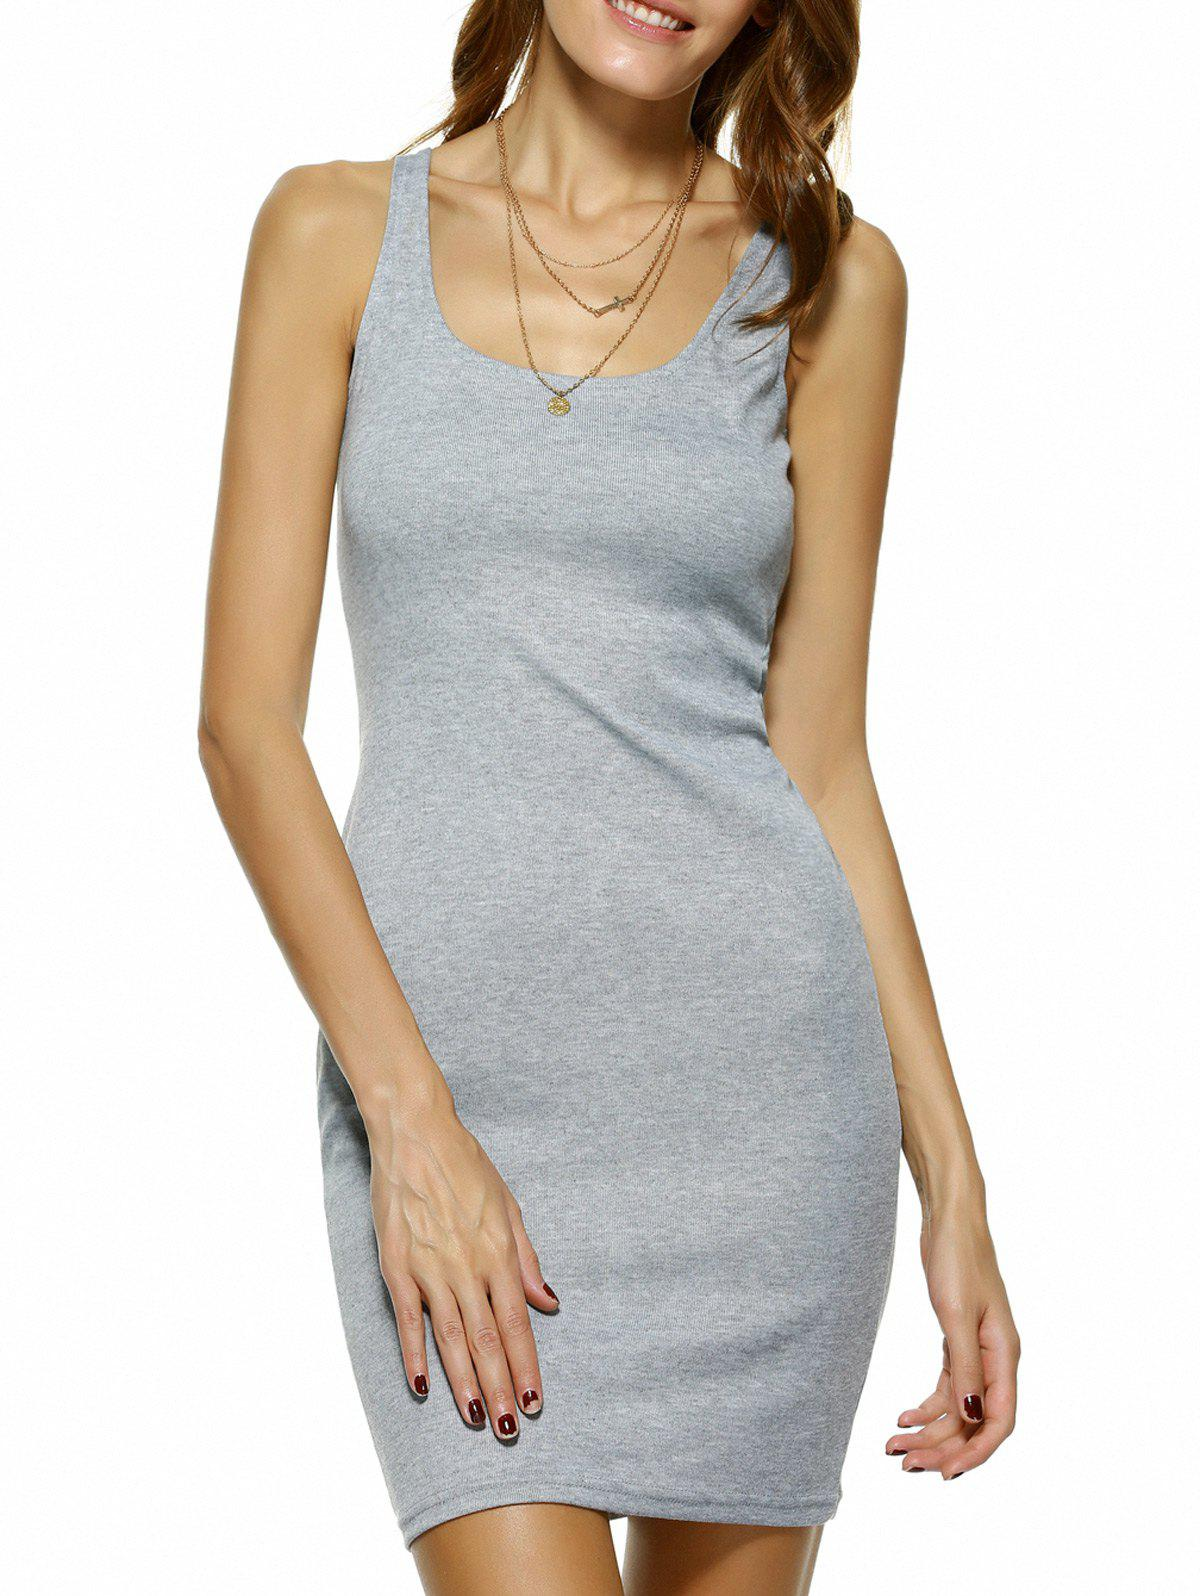 Bodycon Square Neck Mini Tank Dress - GRAY XL